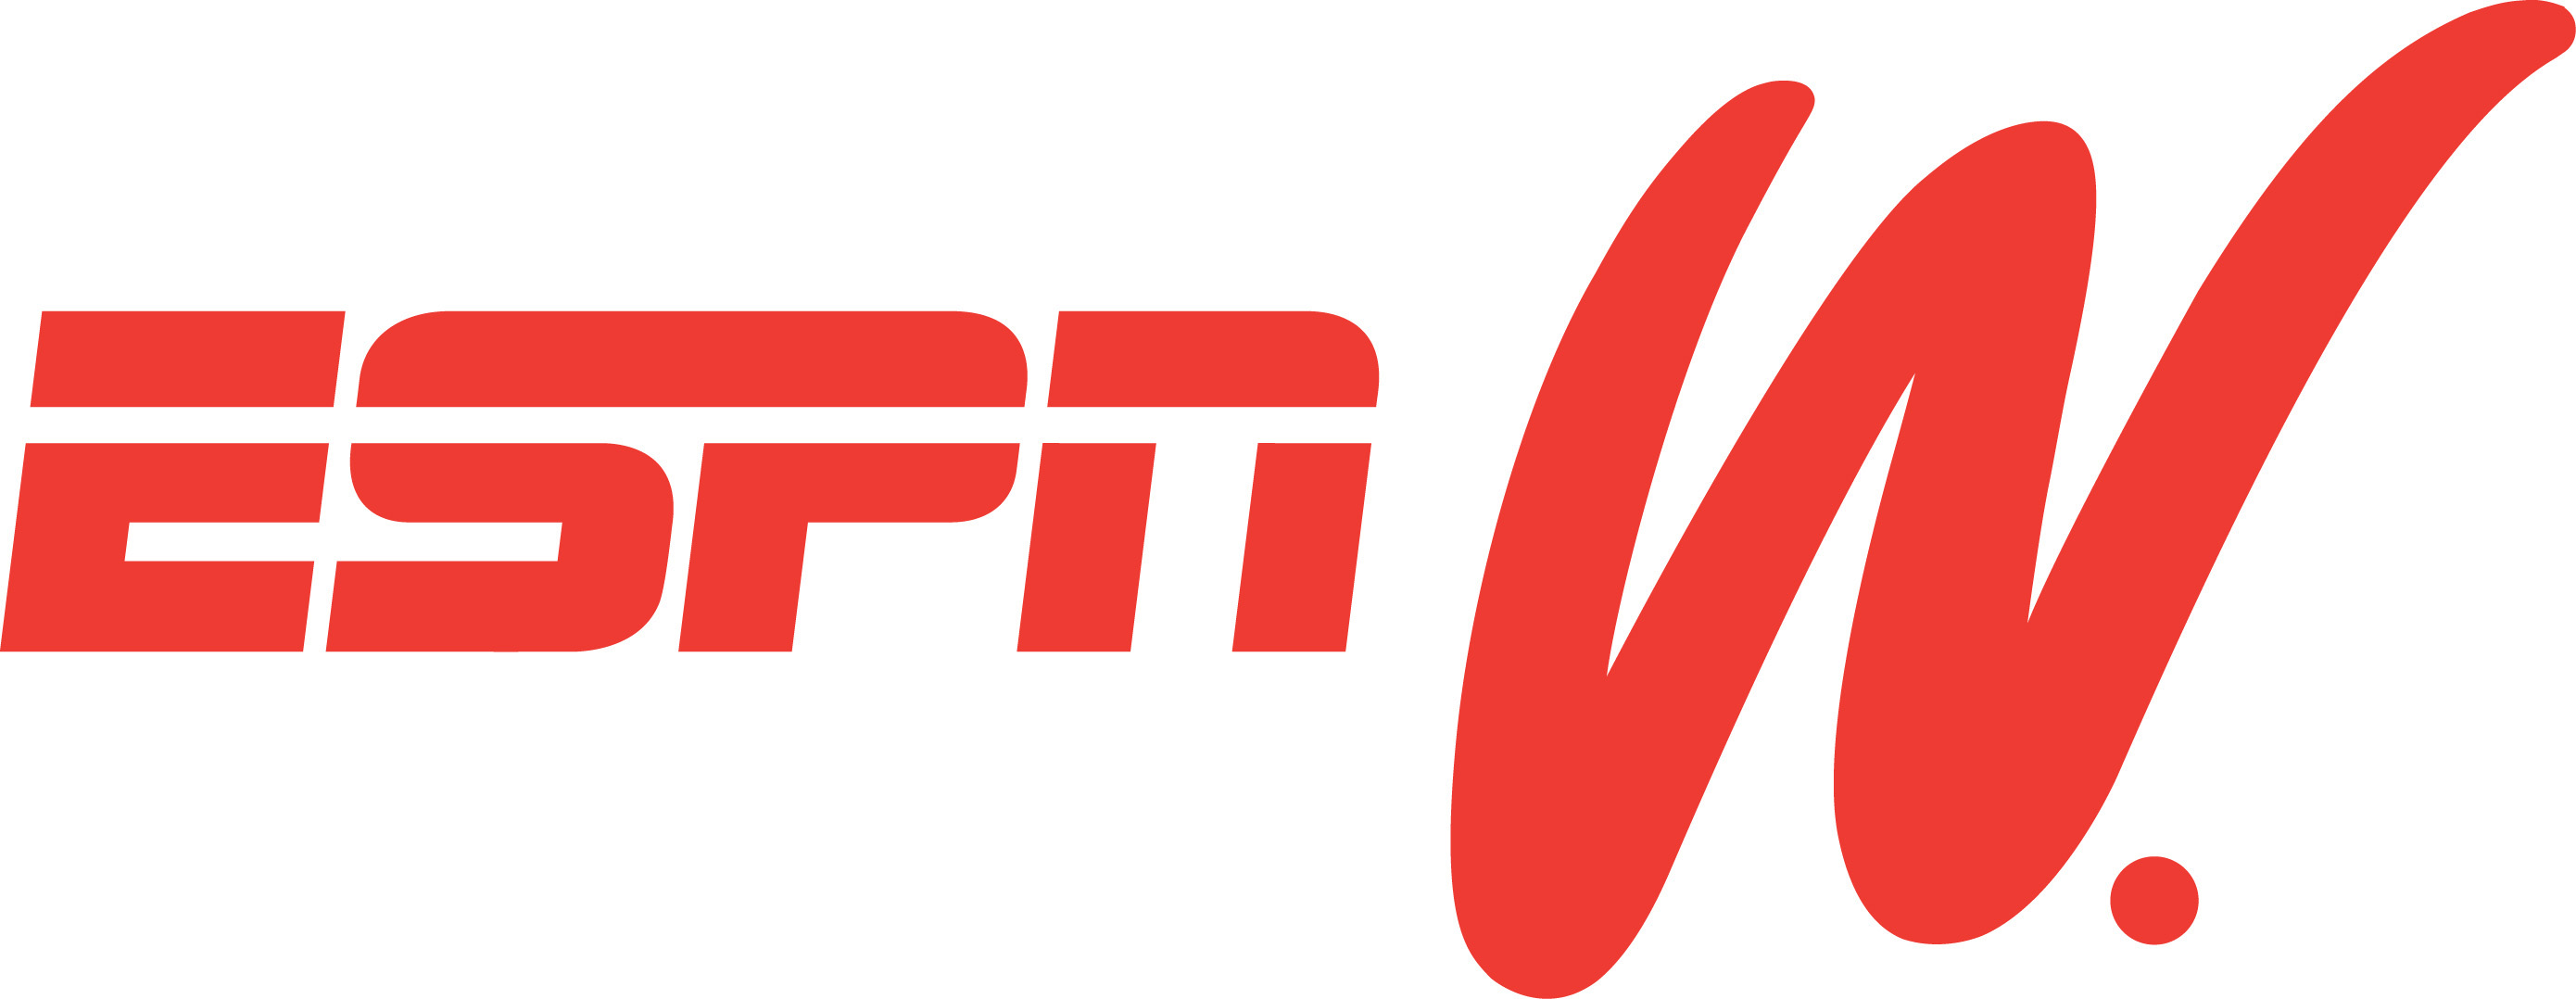 Recharge physical therapy in ellicott city on ESPN